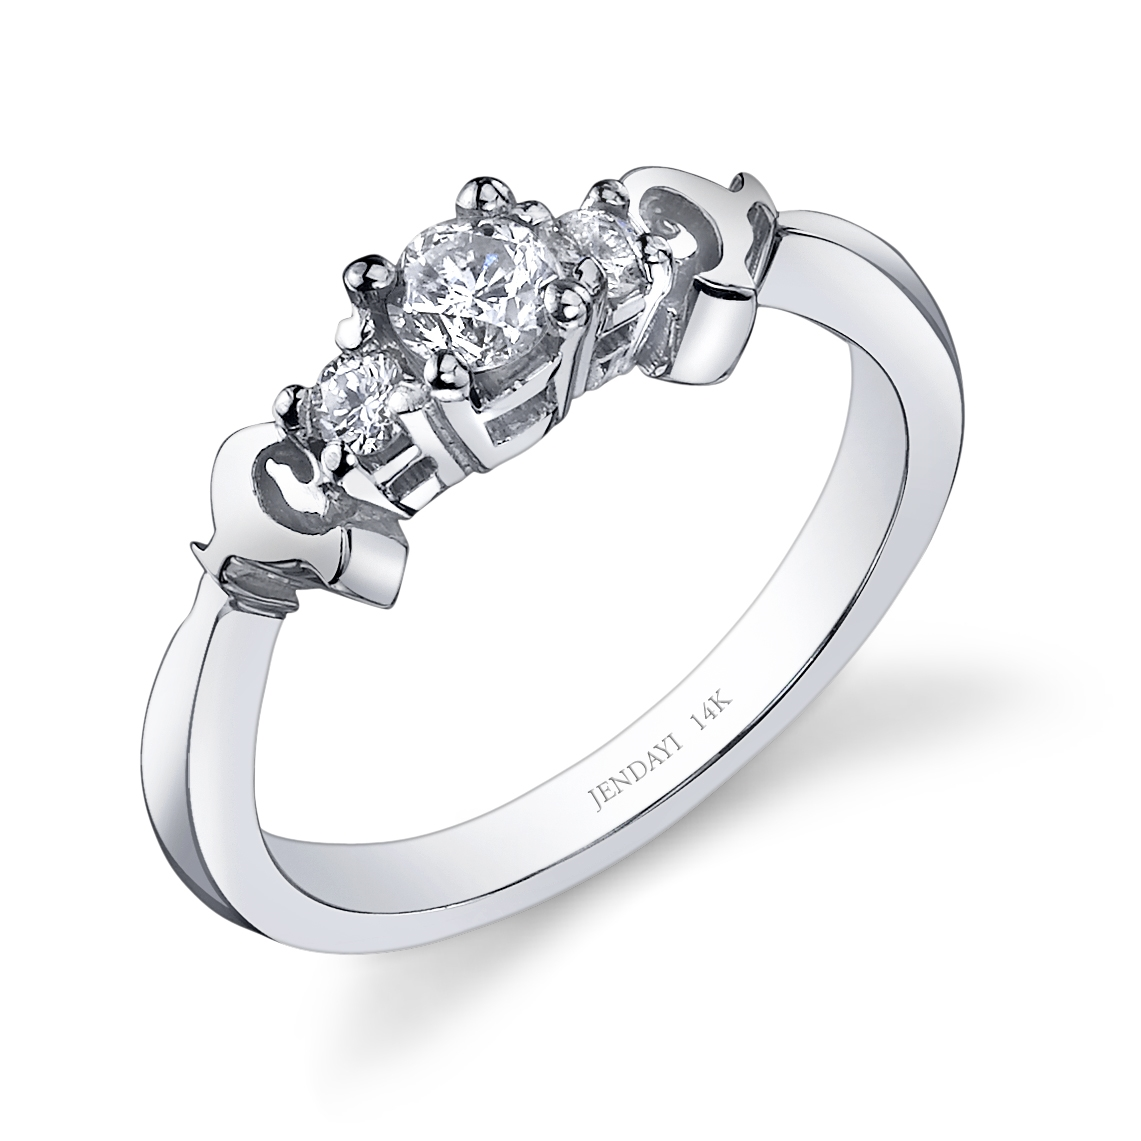 jewellers platinium rings solitaire beaverbrooks ring context platinum engagement the p large diamond